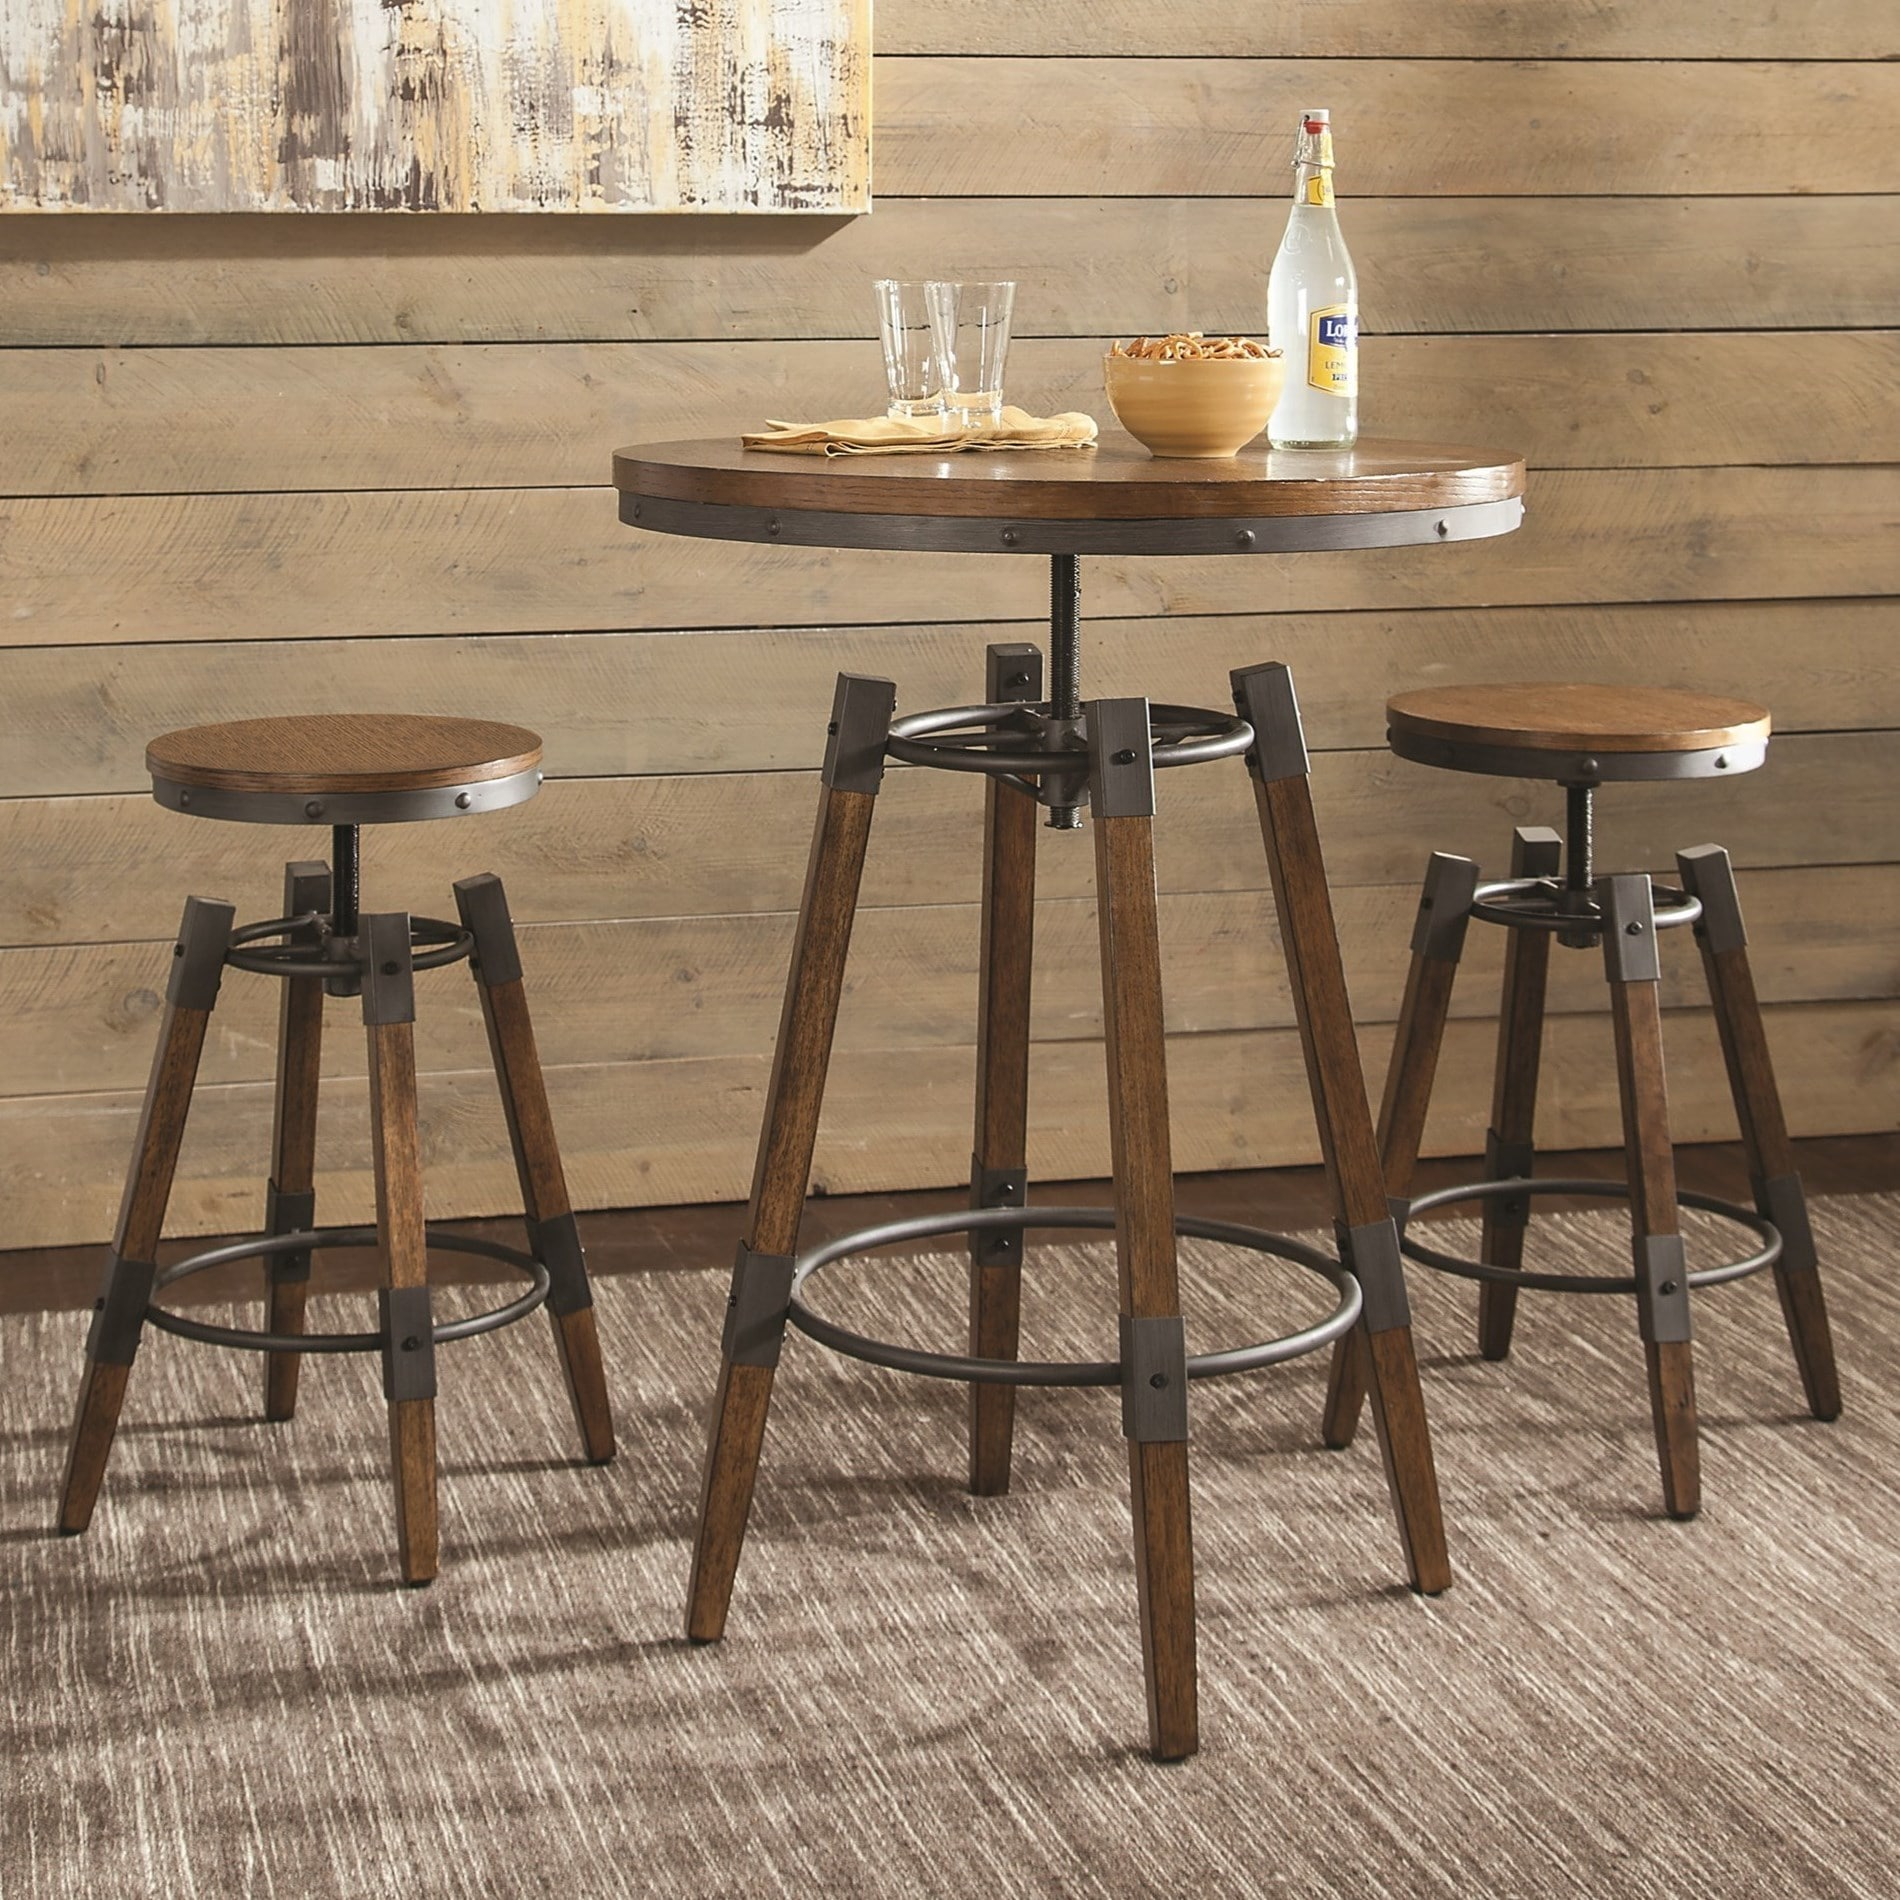 Rustic Design Adjule Bar Dining Set Free Shipping Today 22310221